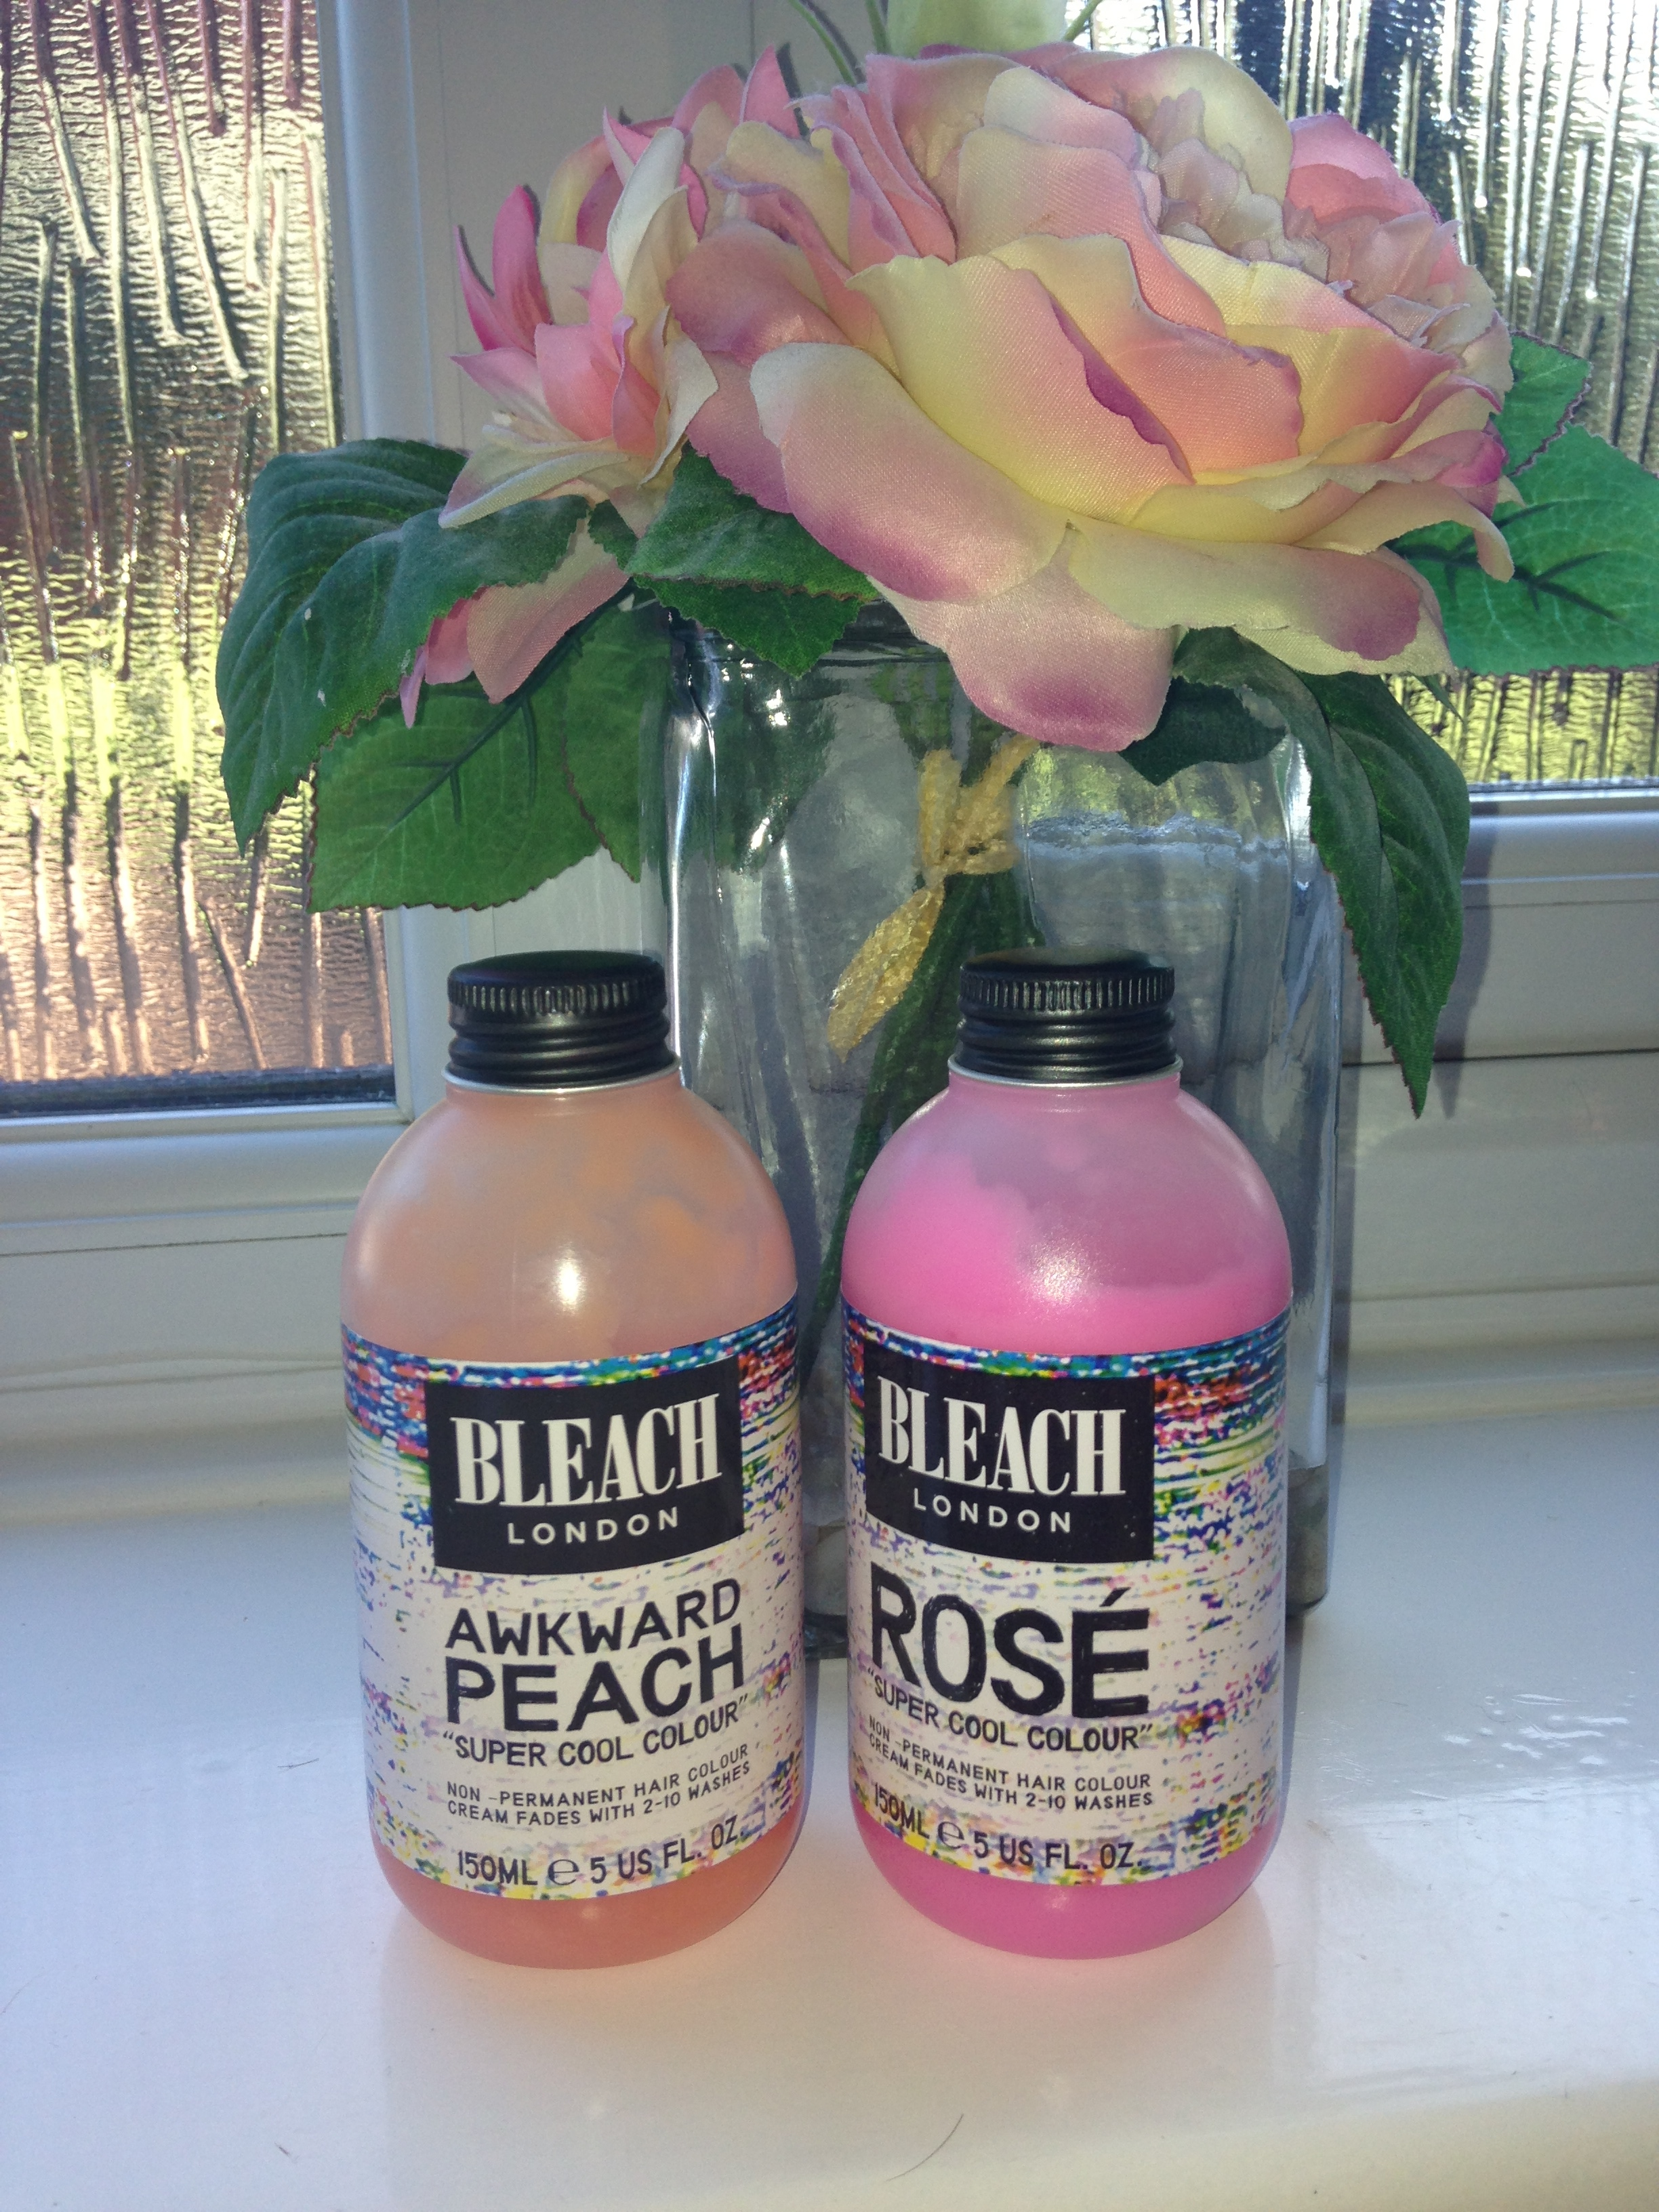 Bleach London Super Cool Colour Dye Review Awkward Peach Rose